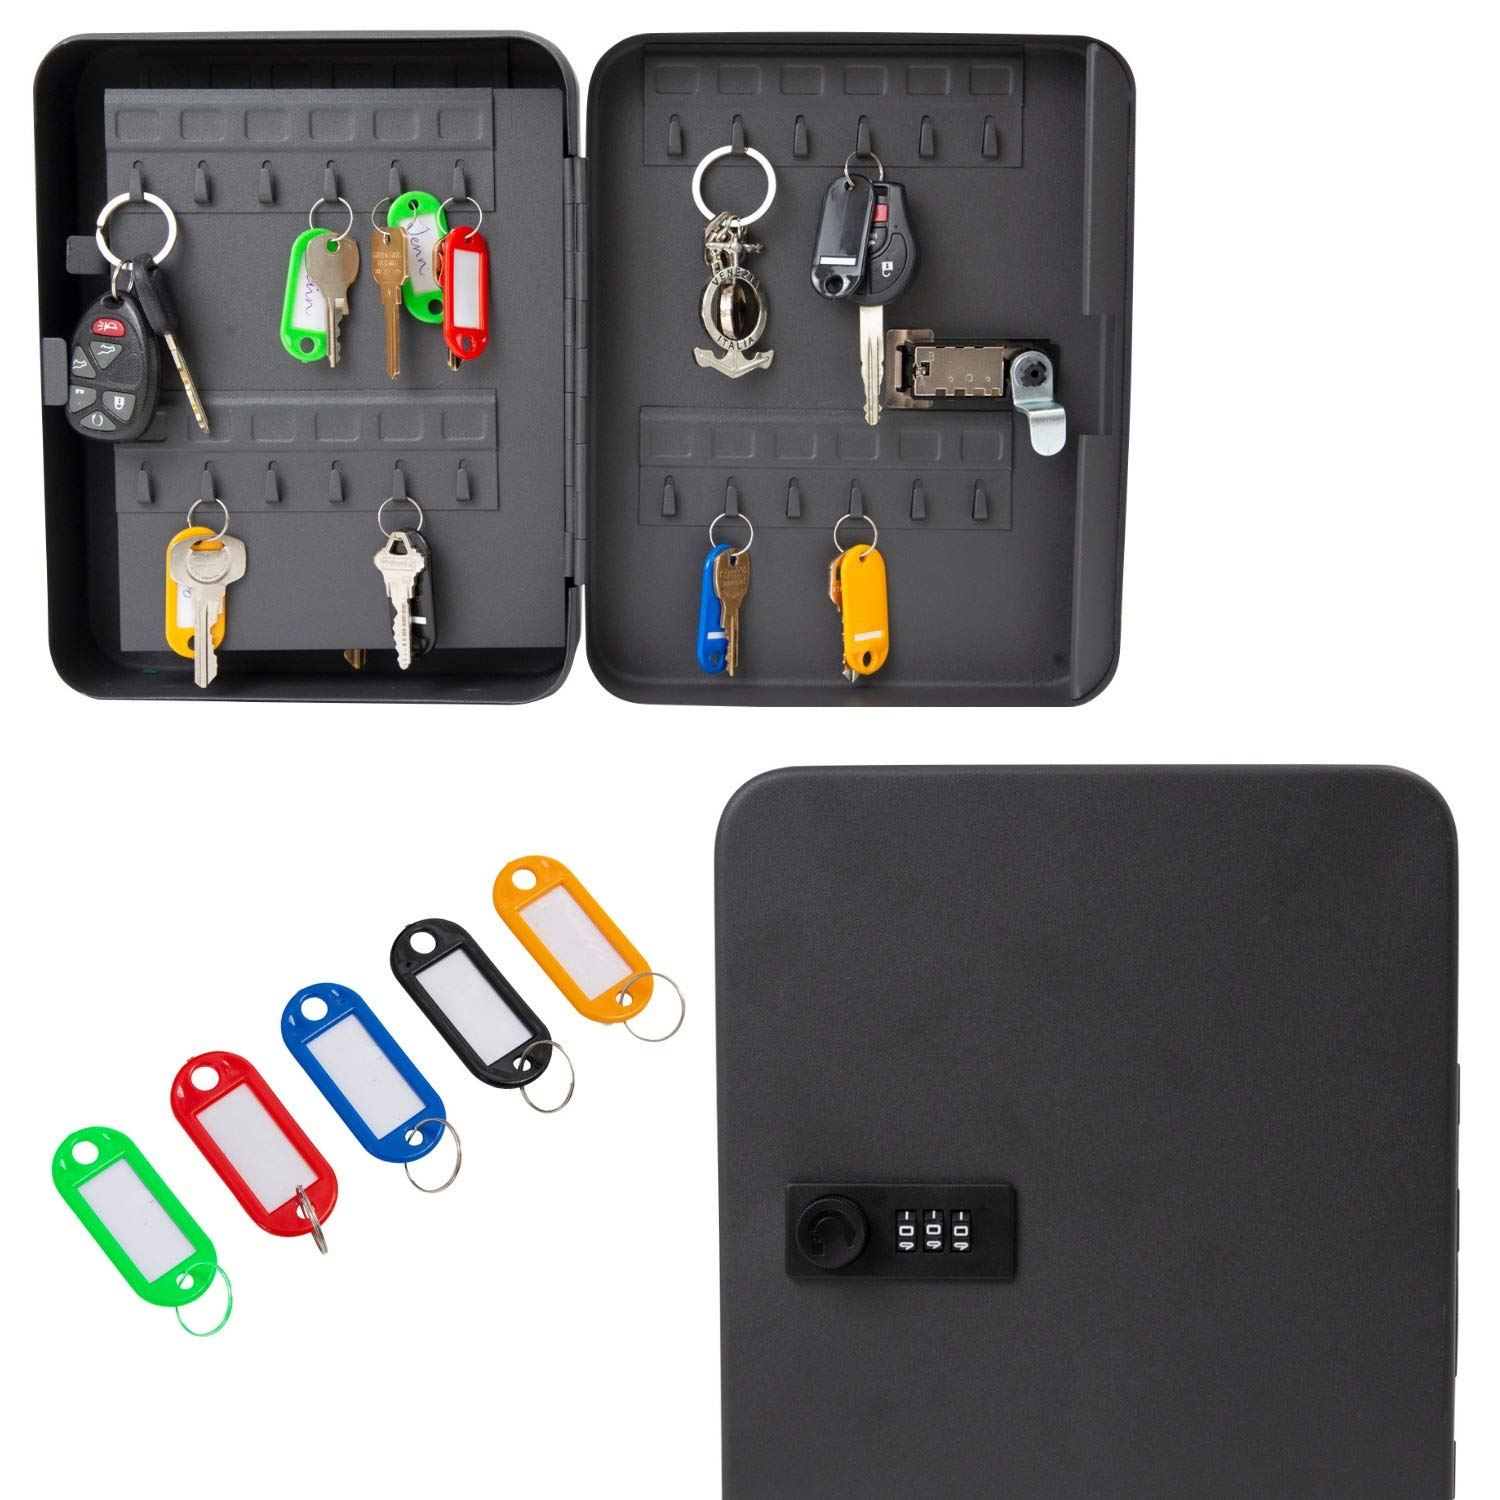 "Metal Houseables Key Lock Box Black 7.9/"" W x 9.9/"" L Real Estate Office LBC-BK-1008 Combination Code Locker Storage Organizer Wall Mount Safe Lockbox Cabinet 48 Tags Outdoor Keybox Closet for Realtor"